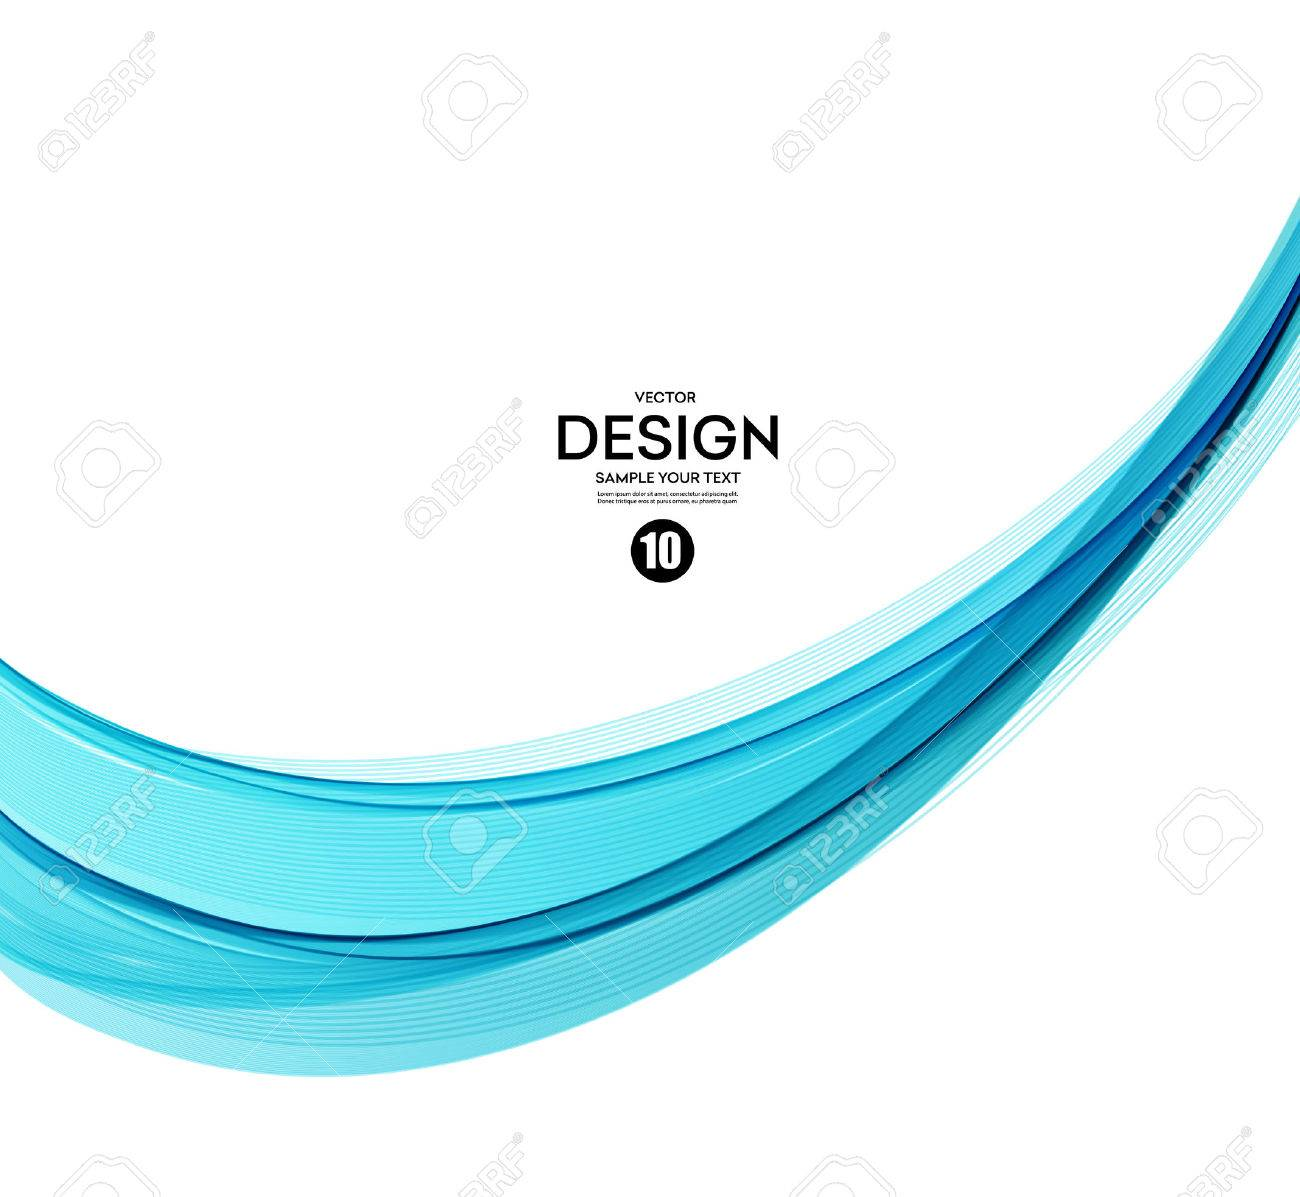 Abstract vector background, blue transparent waved lines. - 53407090